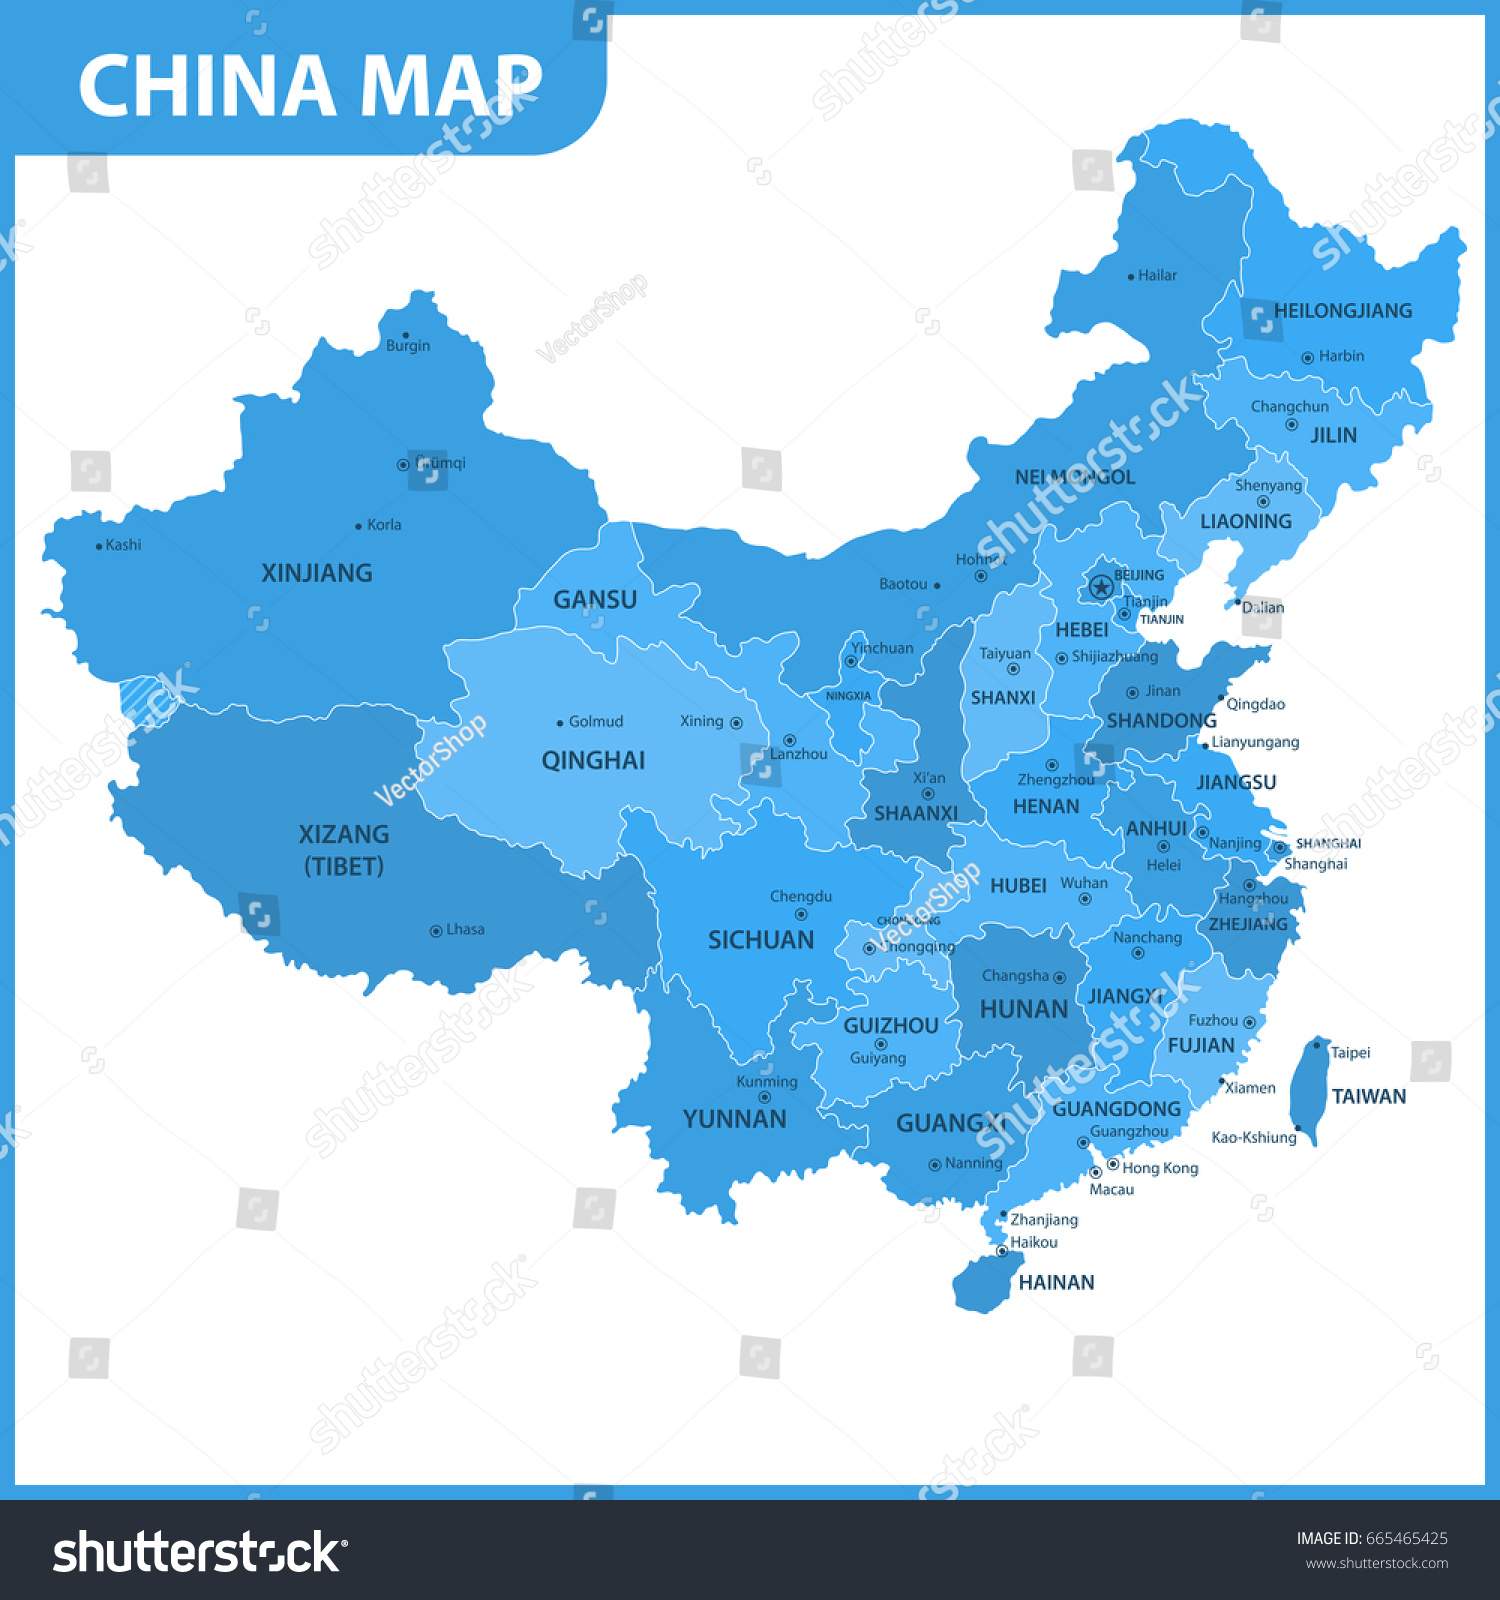 Detailed Map China Regions States Cities Stock Vector - China map states cities map